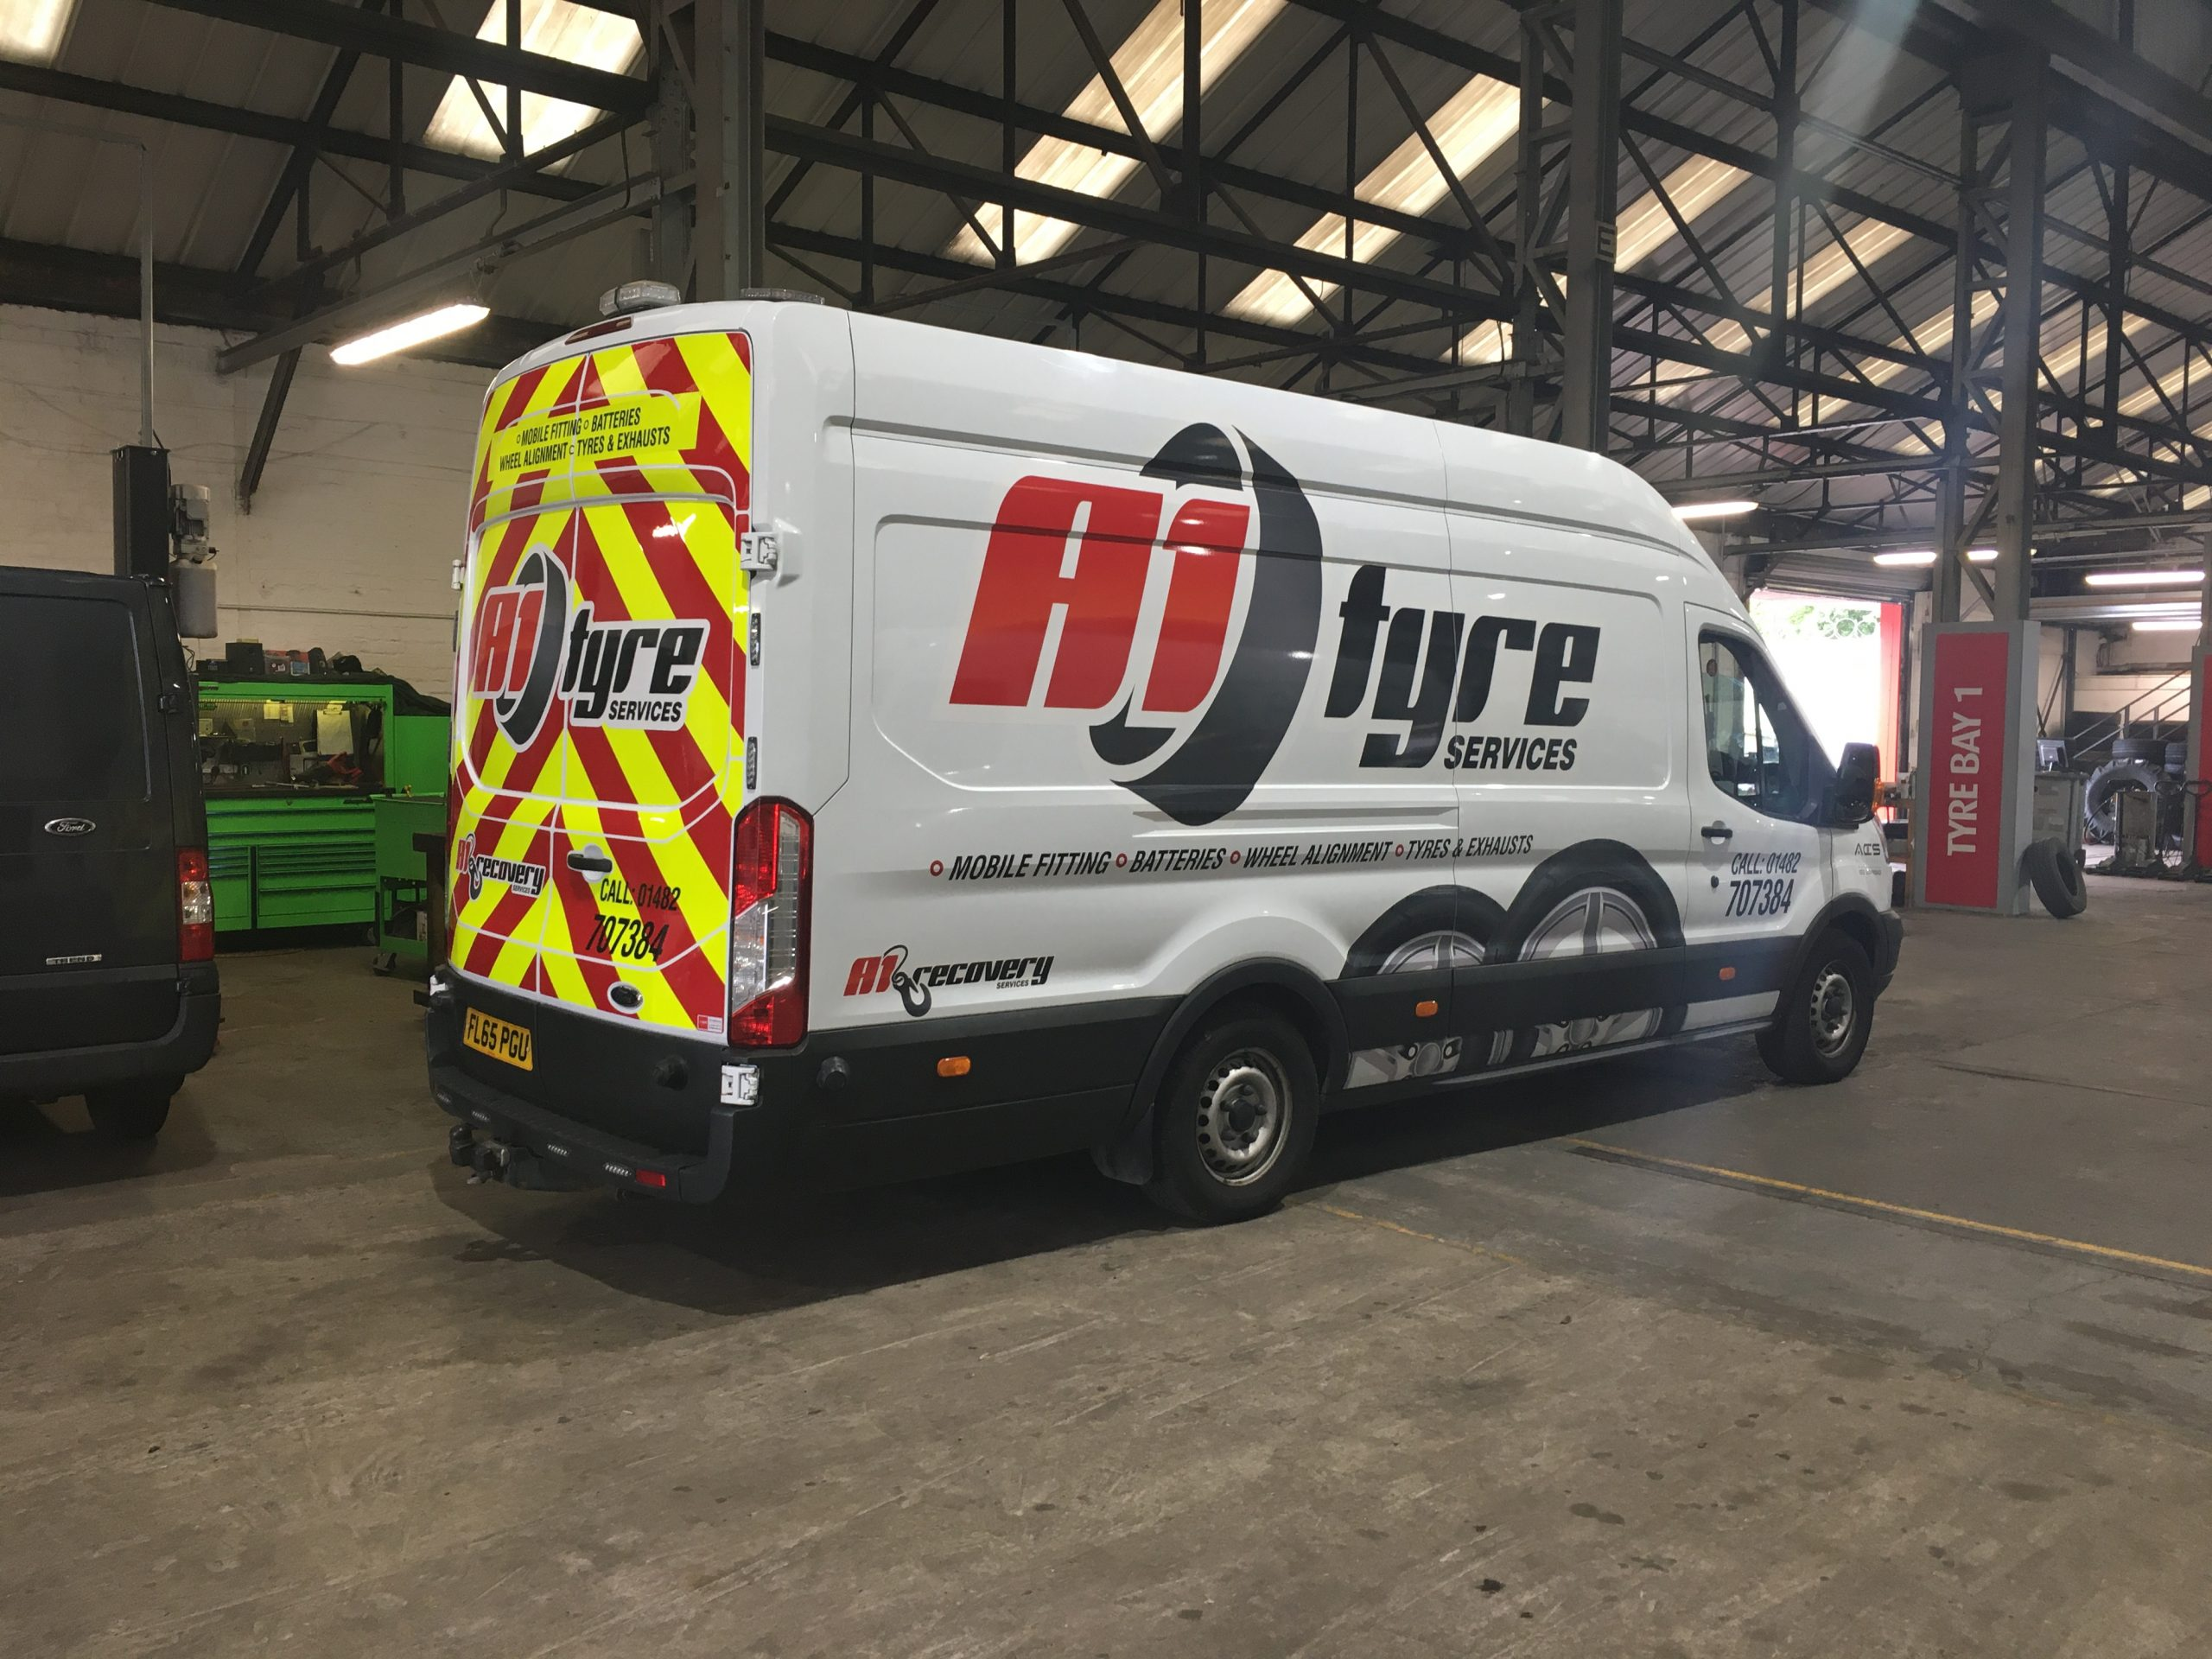 Breakdown Recovery Garage in Scarborough